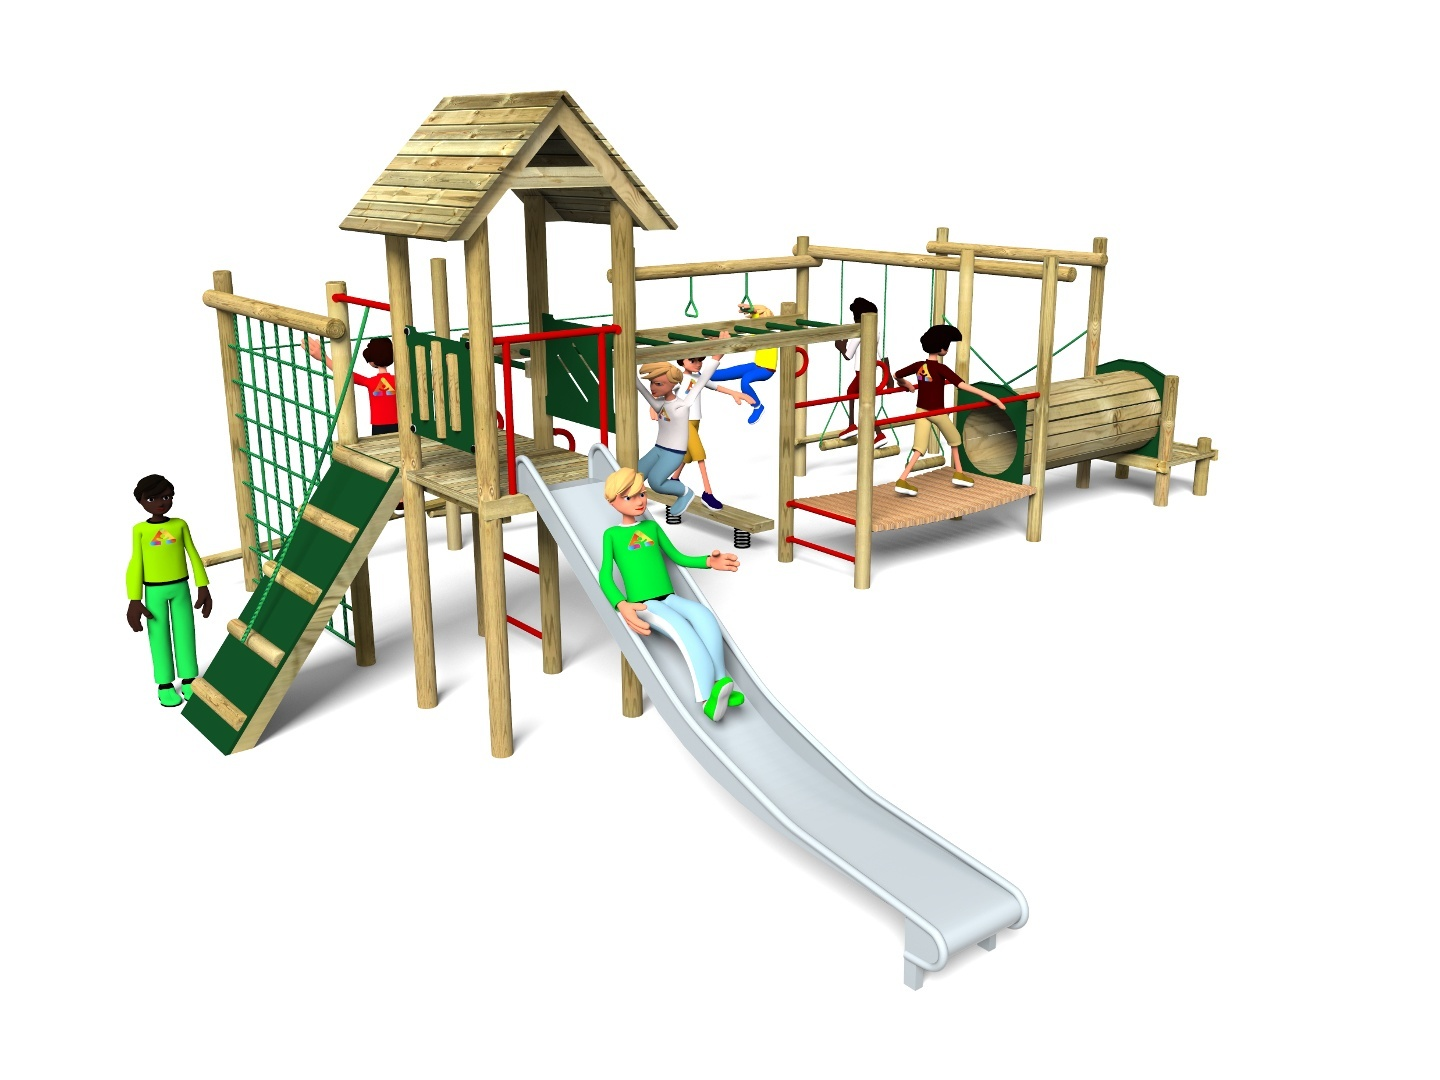 lavenham 4 climbing frame action play leisure. Black Bedroom Furniture Sets. Home Design Ideas